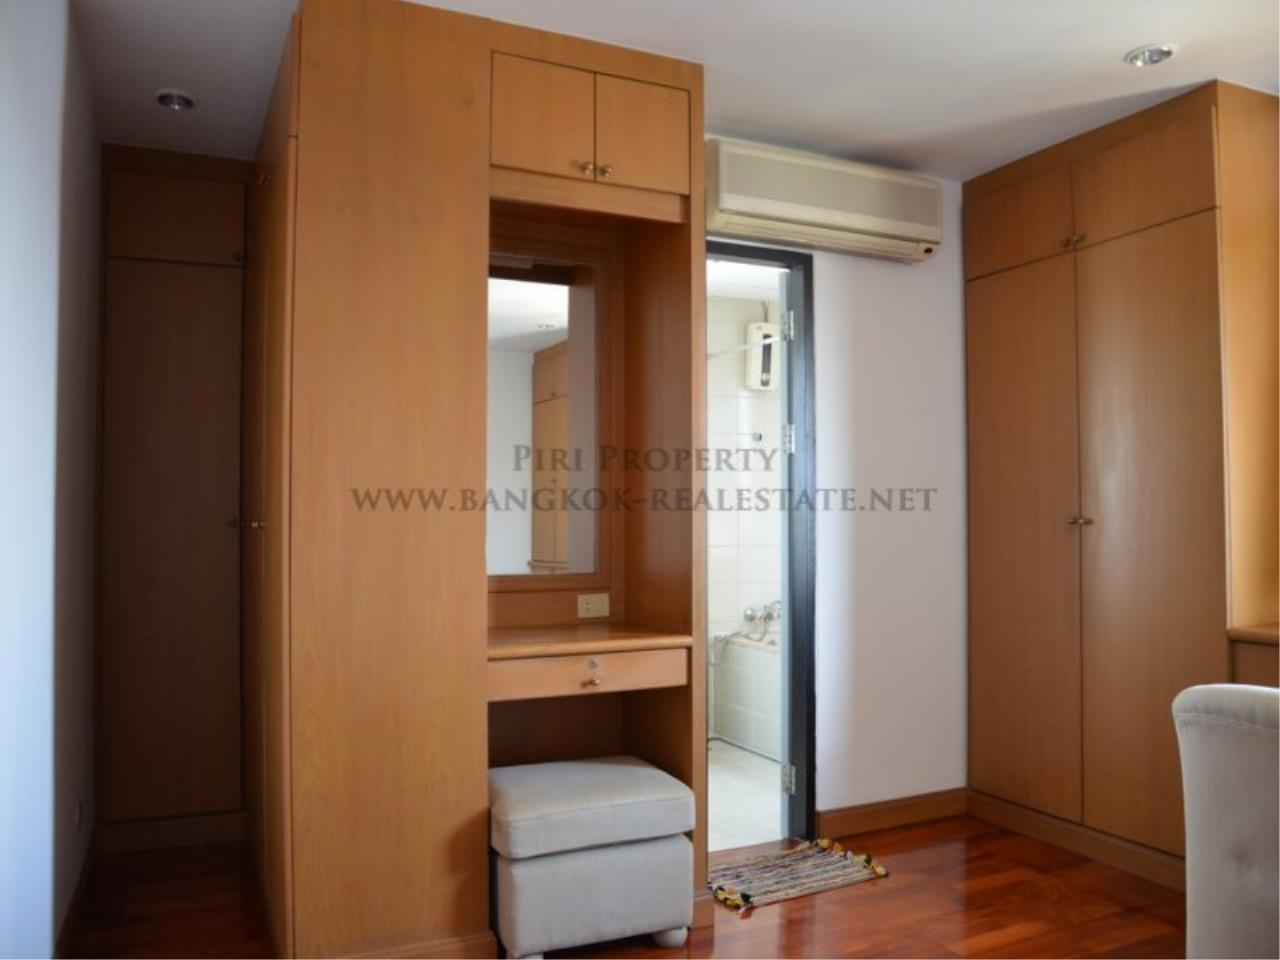 Piri Property Agency's Spacious 3 Bedroom Condo in Ekkamai - 128 SQM for 50K - Top View Tower - 30th Floor 7